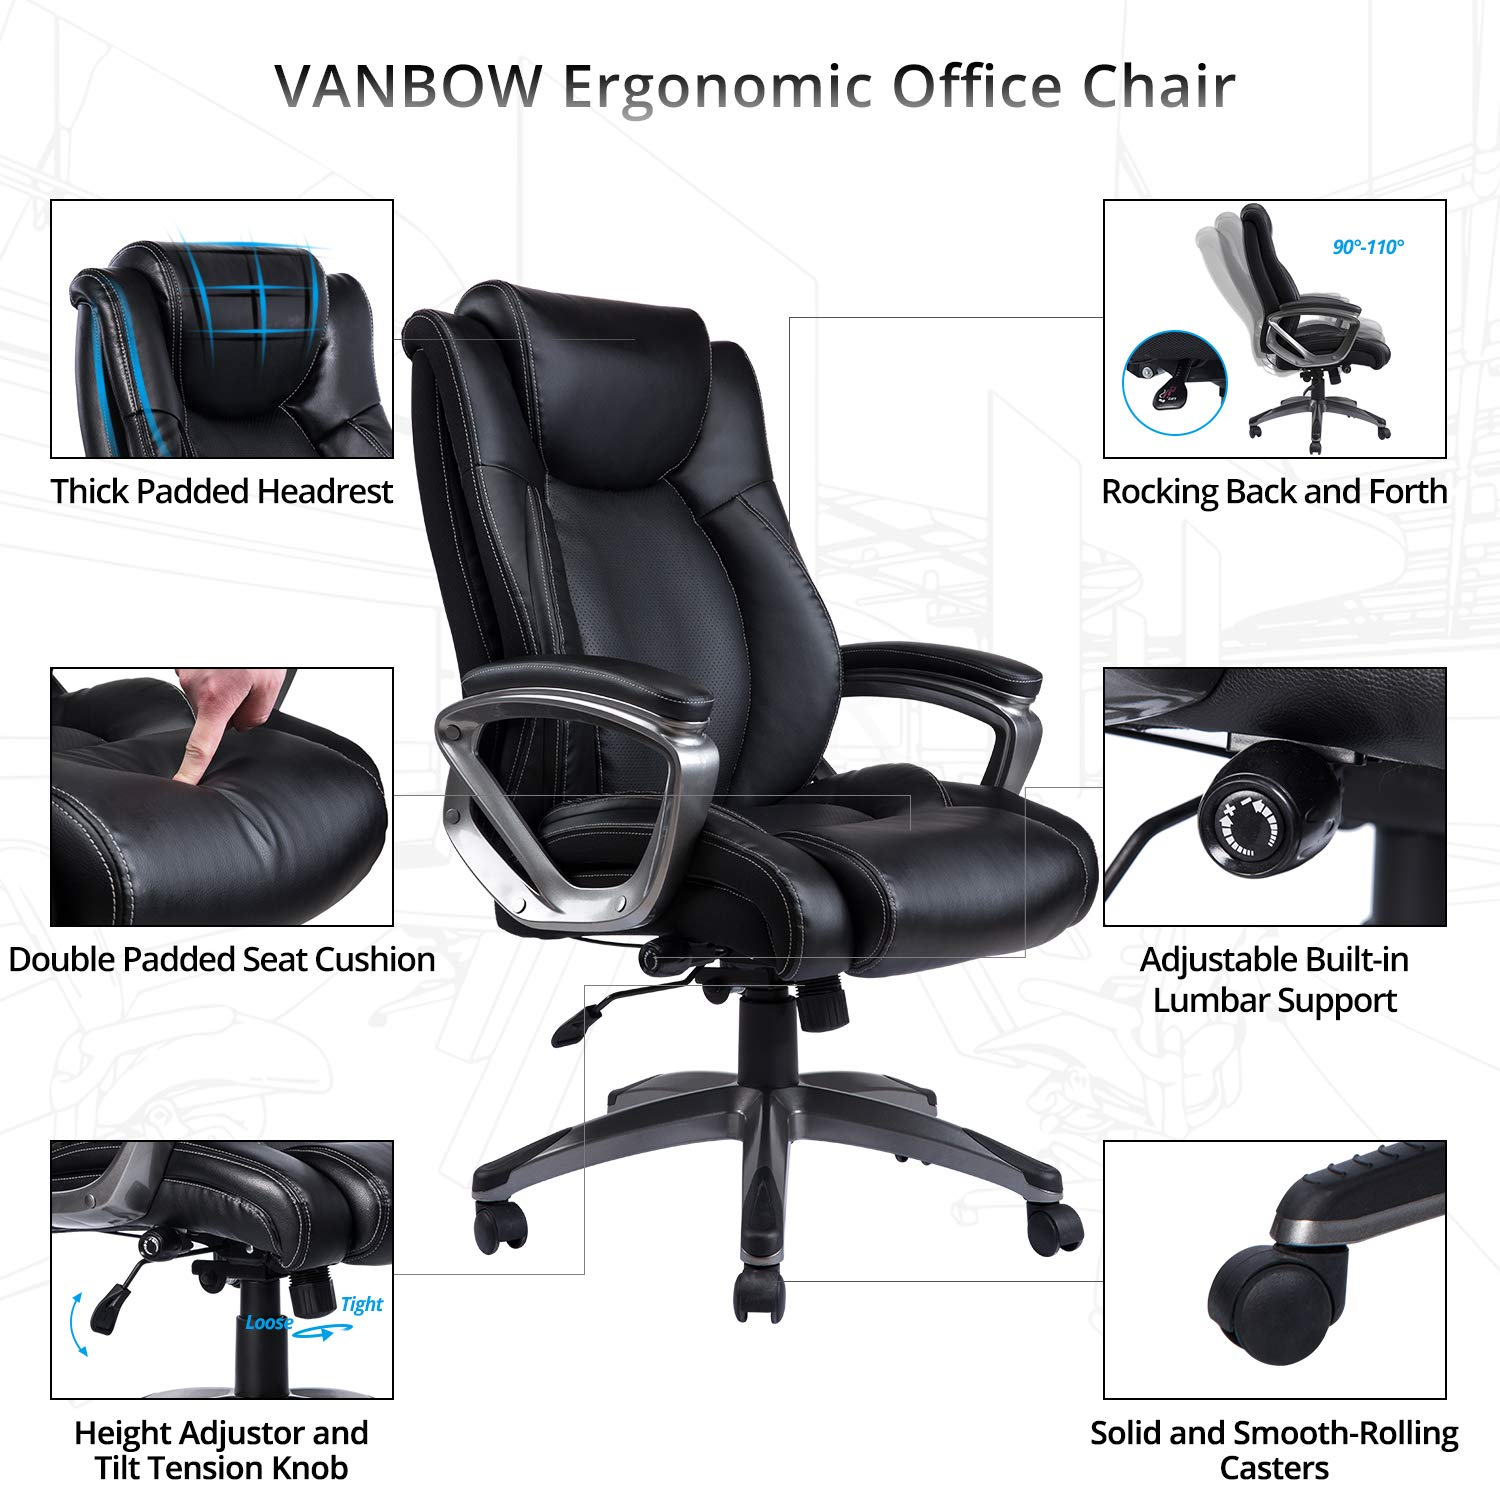 VANBOW Leather Memory Foam Office Chair - Adjustable Lumbar Support Knob and Tilt Angle High Back Executive Computer Desk Chair, Thick Padding for Comfort Ergonomic Design for Lumbar Support, Black by VANBOW (Image #2)